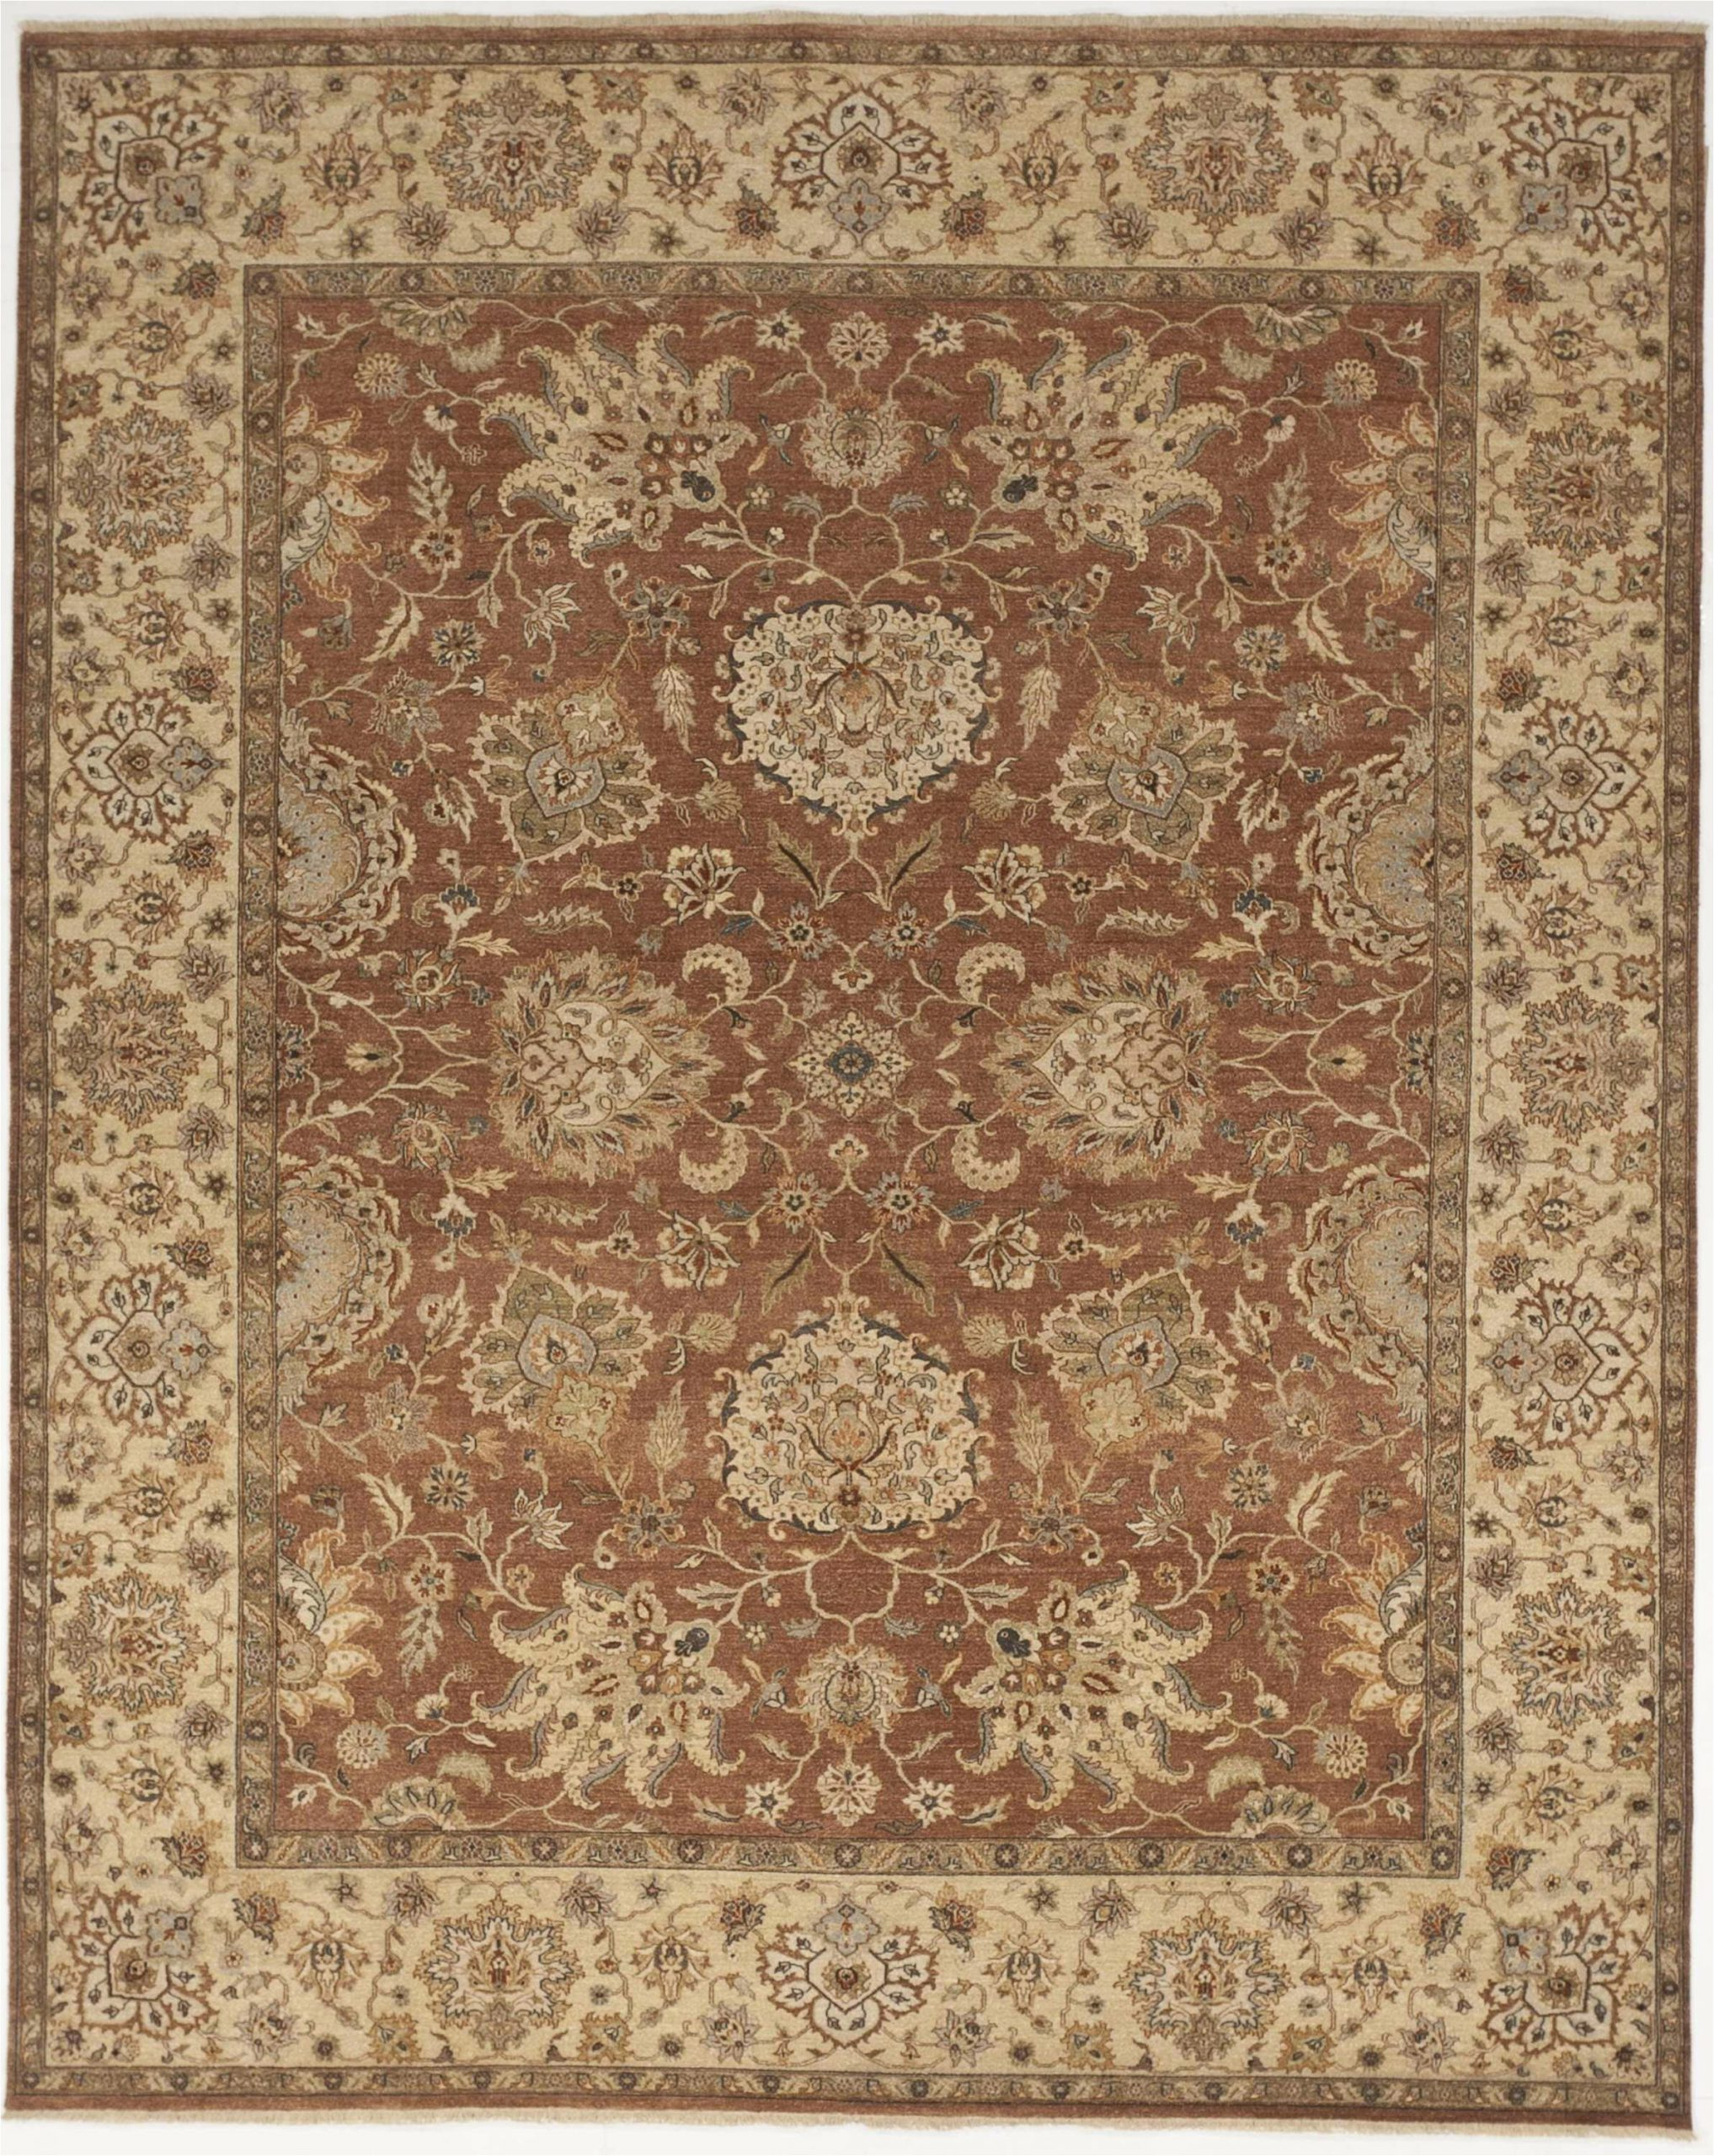 strahan luxury hand knotted wool beigerust area rug